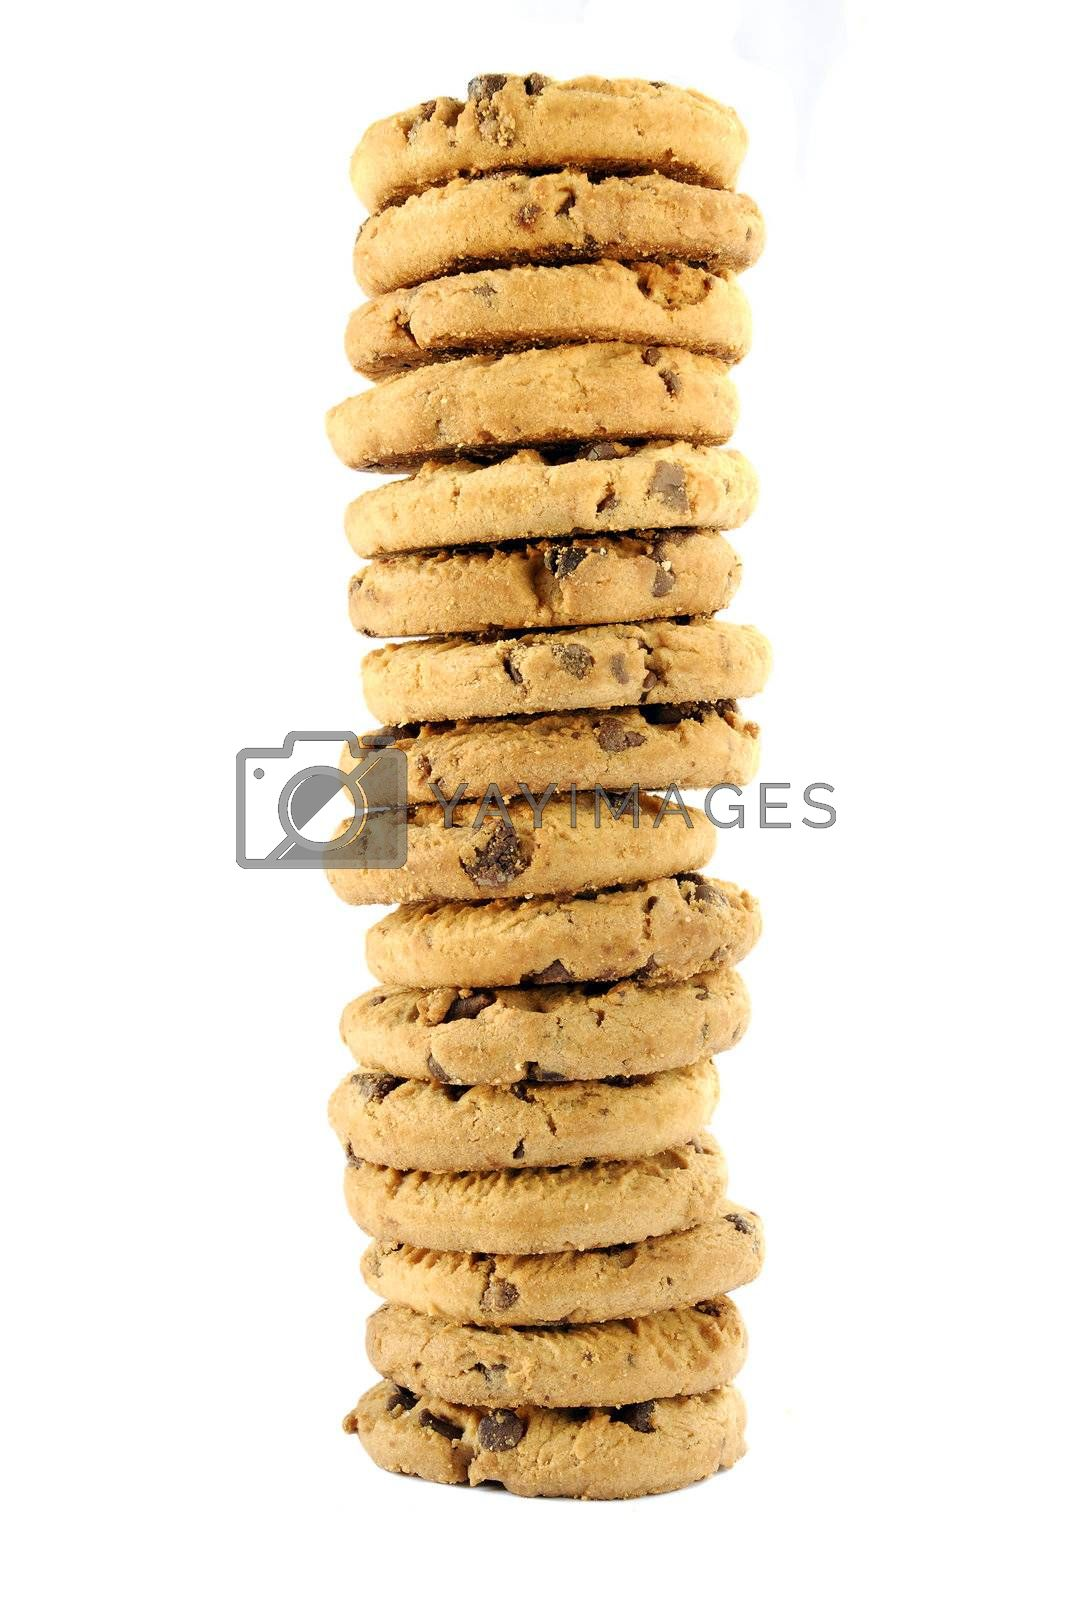 a tower of delicious chocolate chip cookies